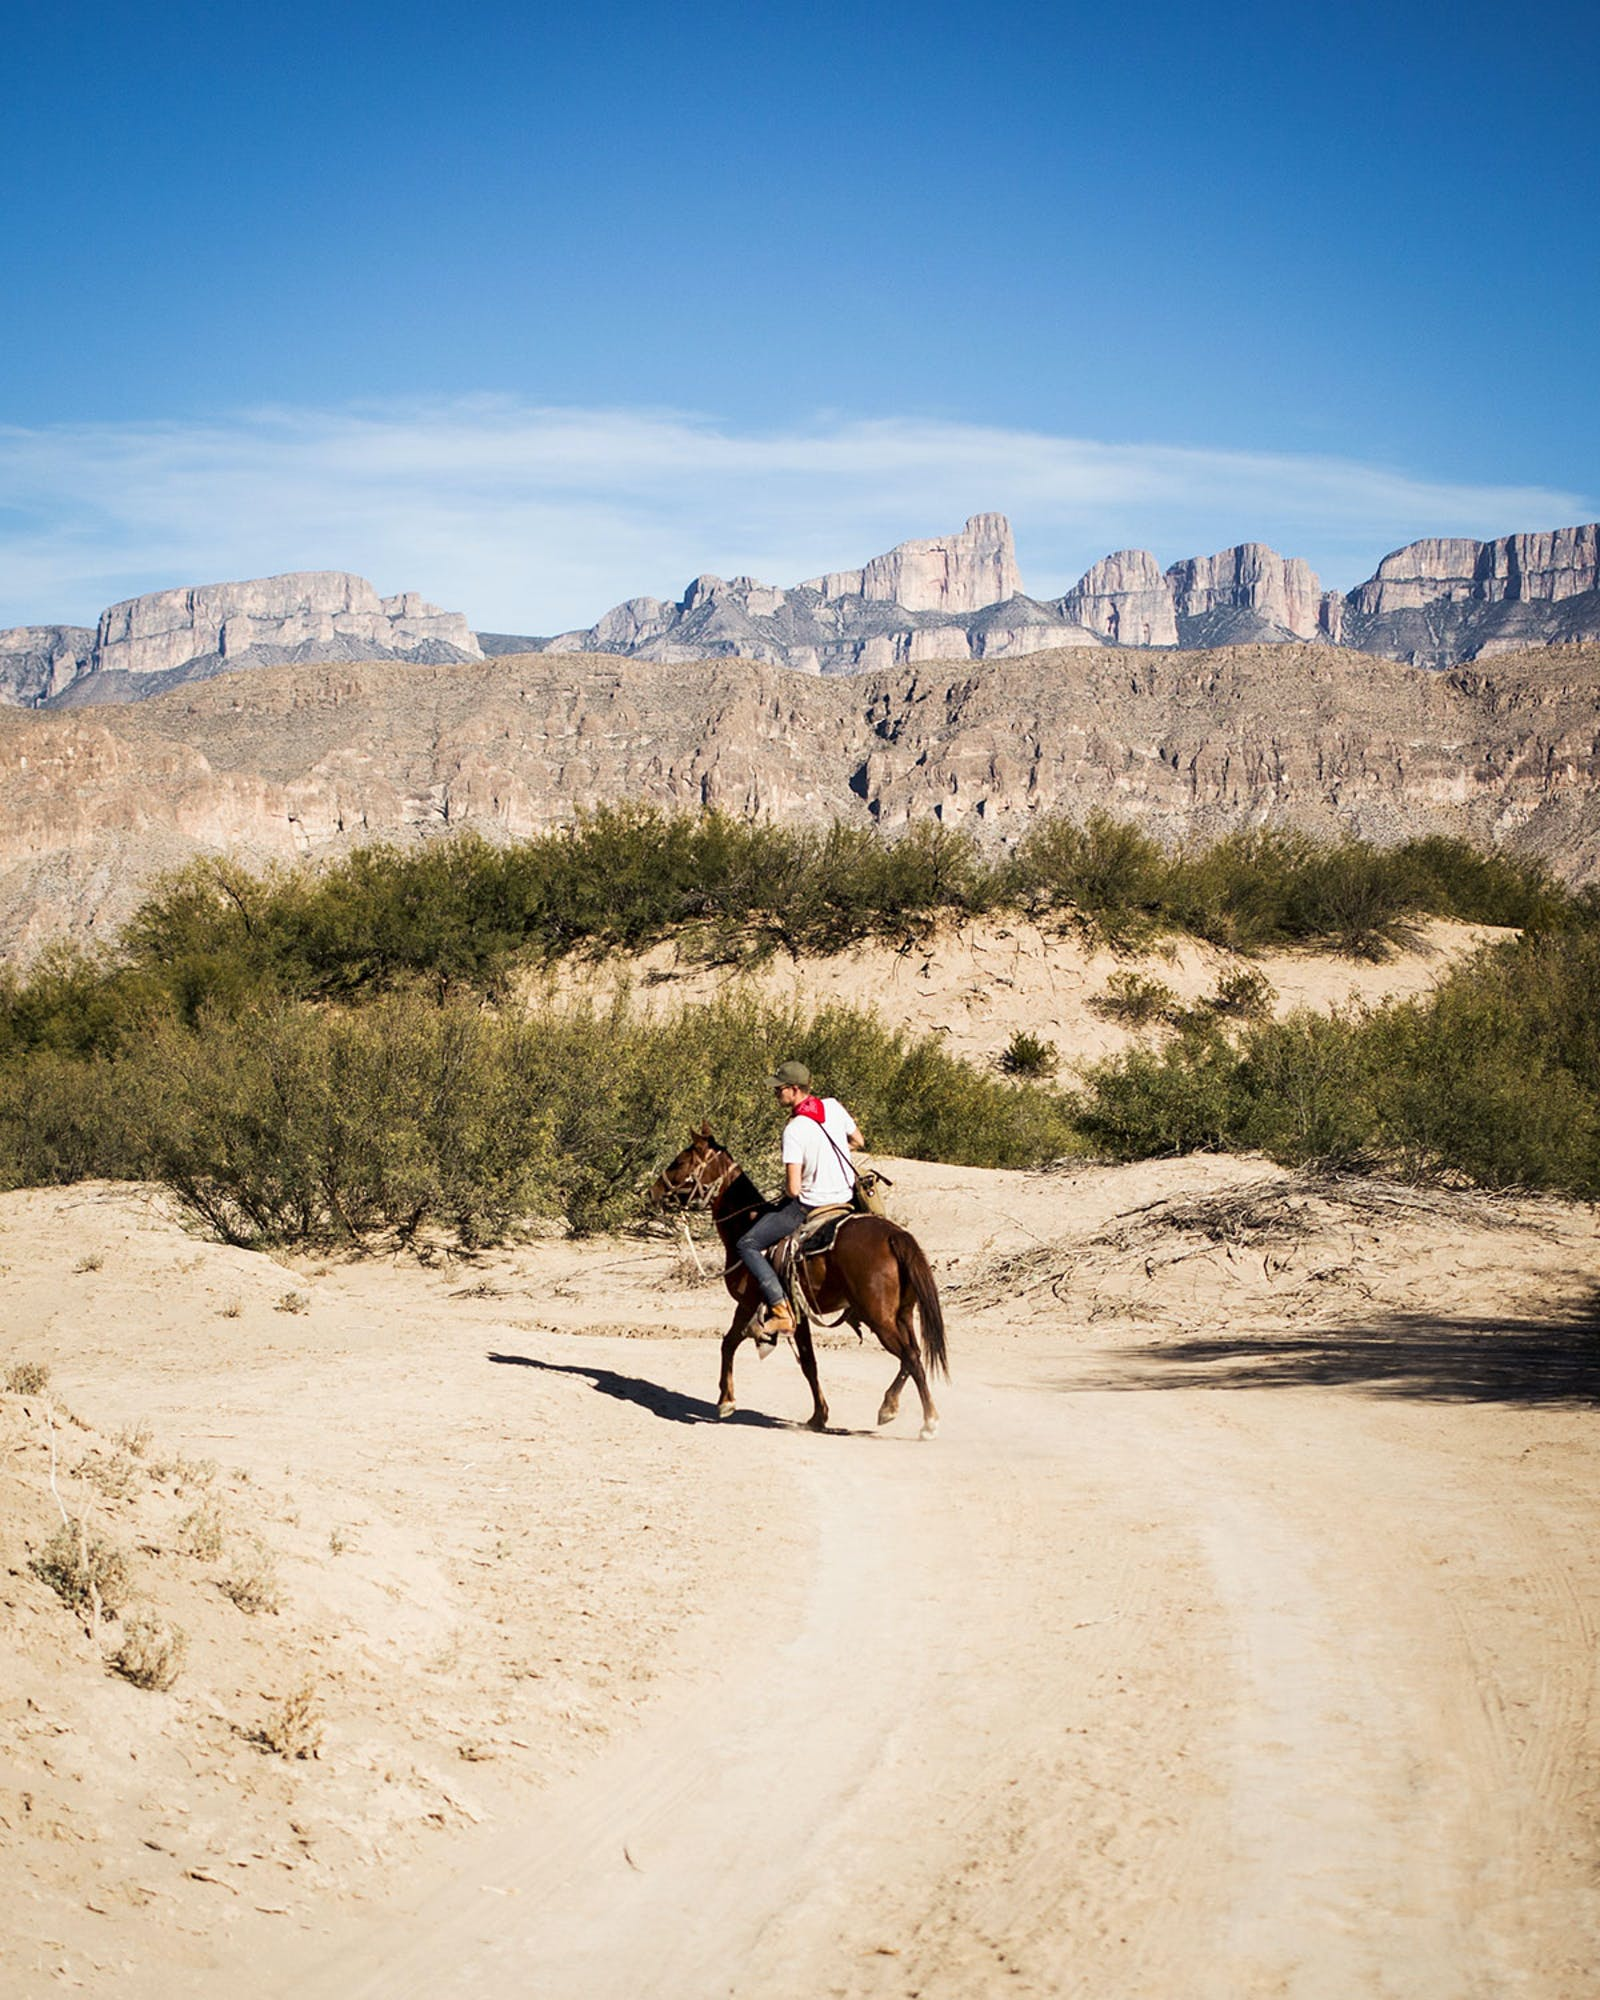 Riding a horse in Boquillas